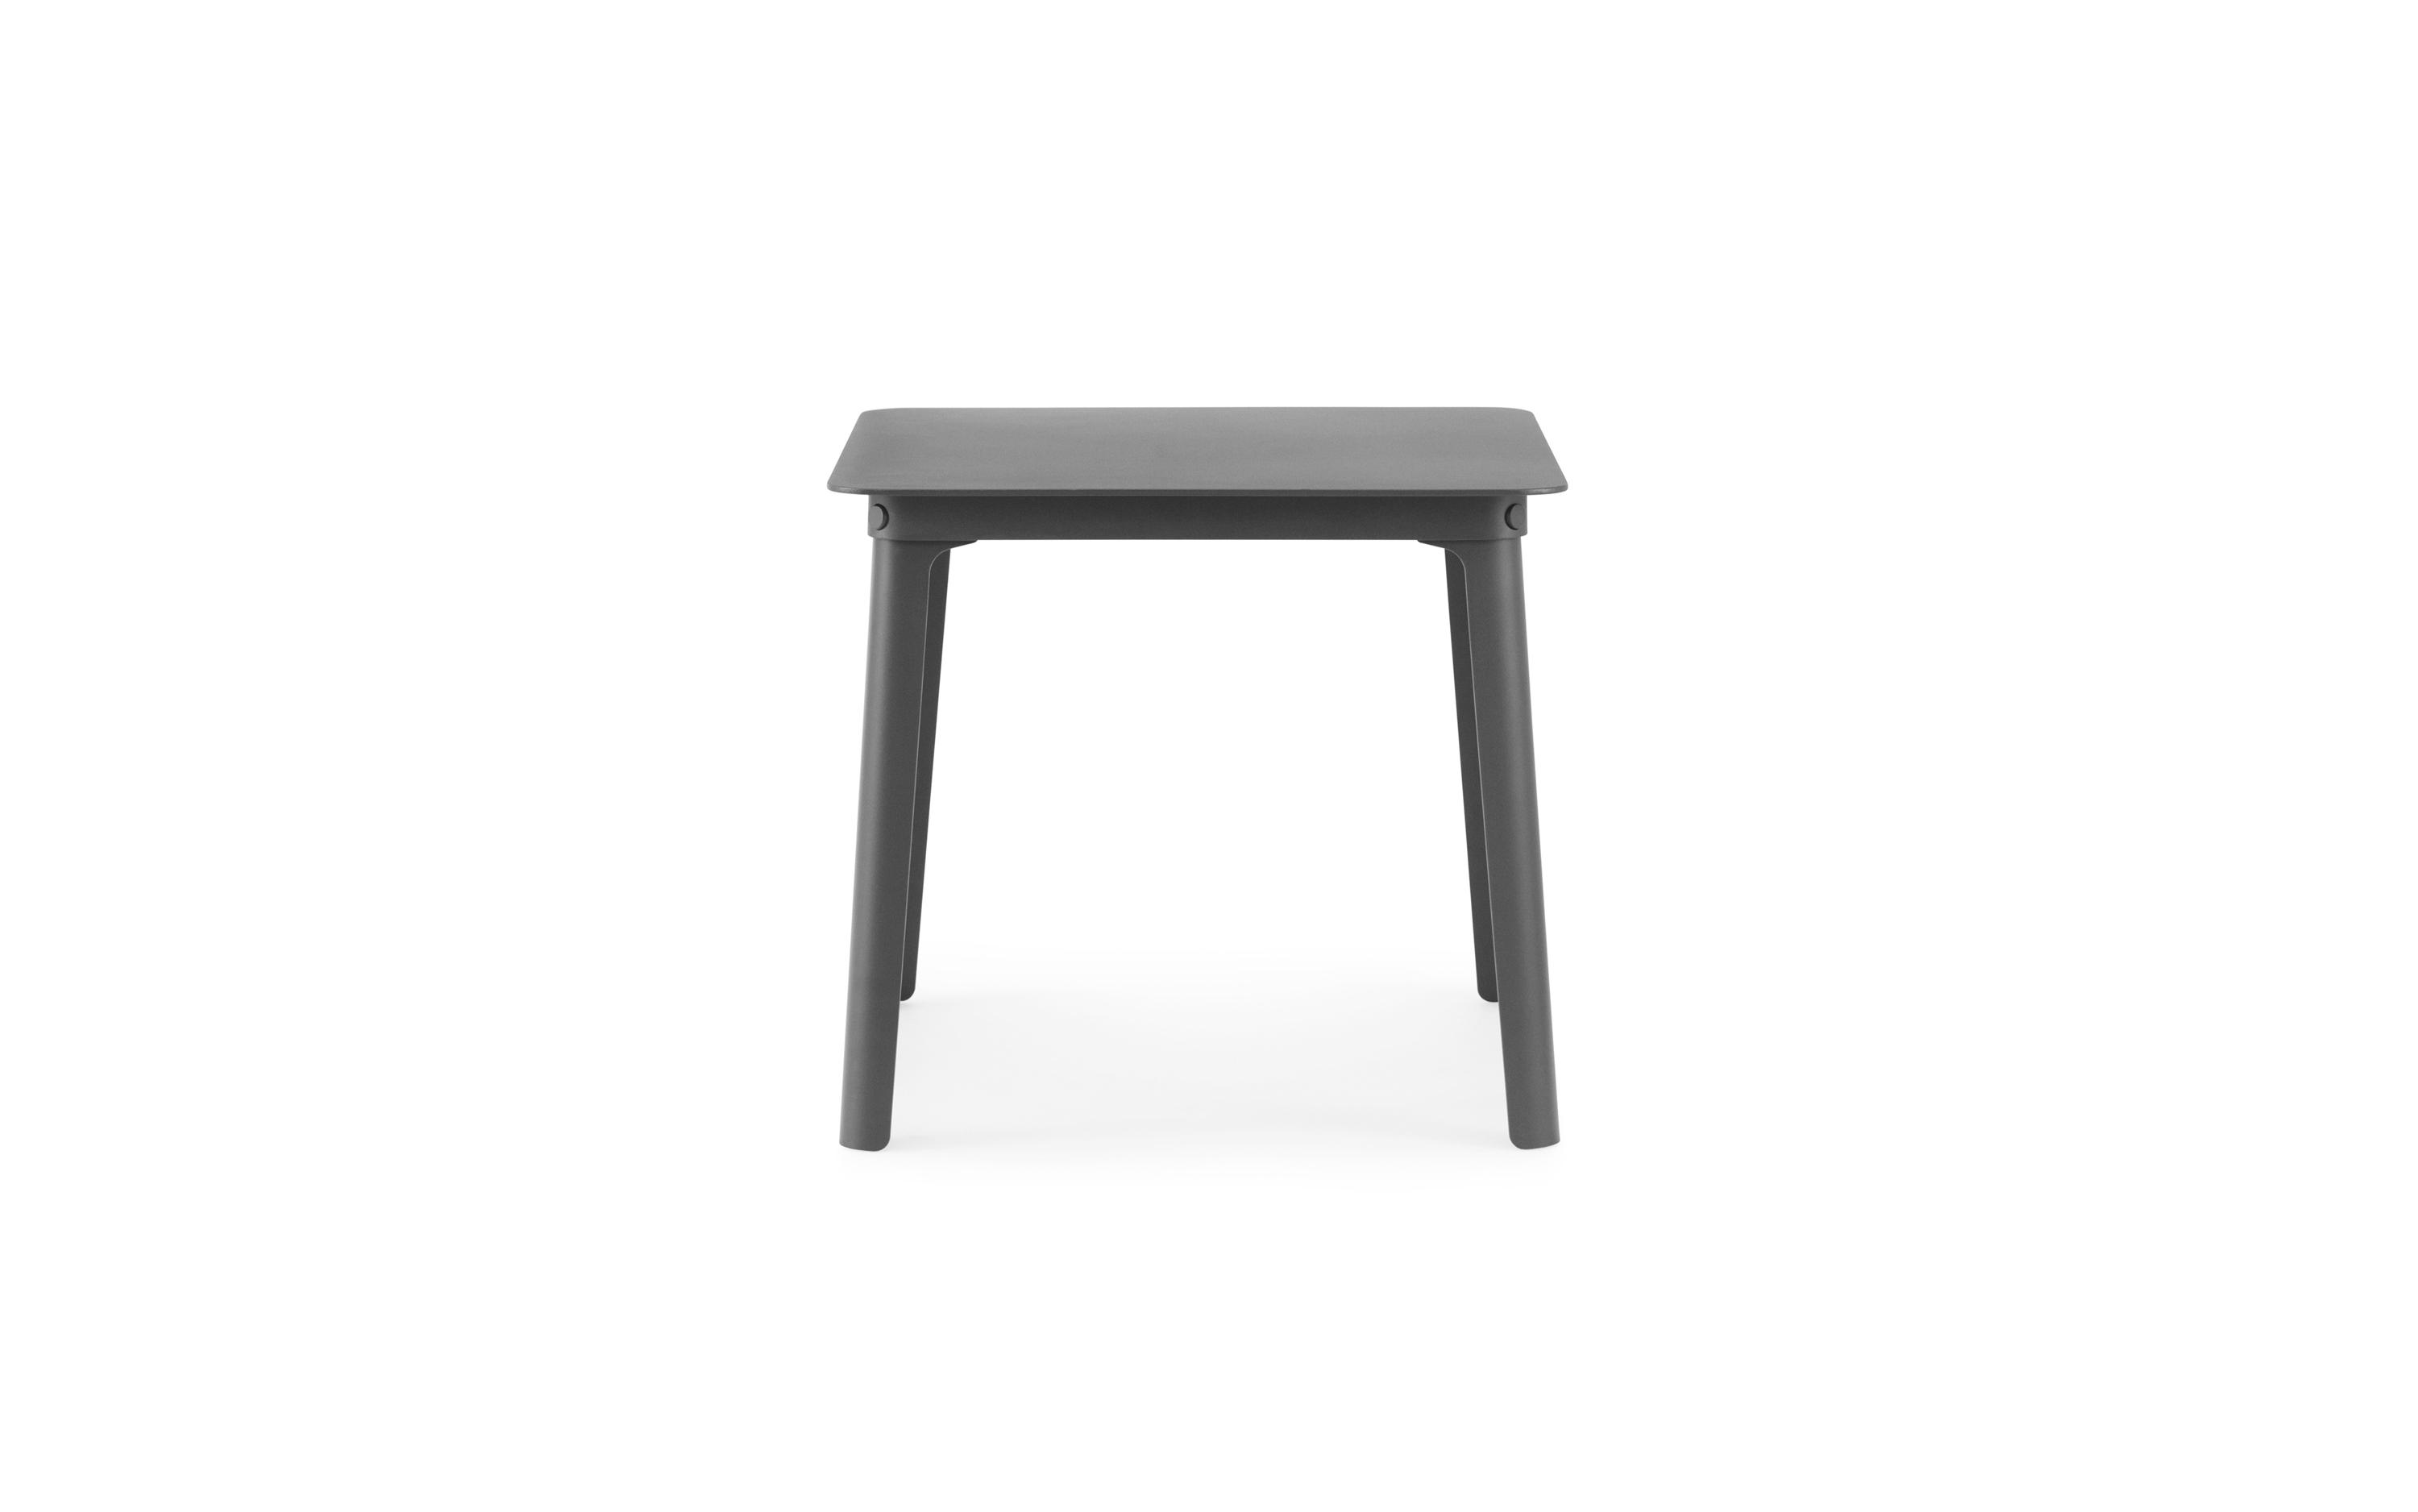 Amazing Steady Table Small Couchtische Von Normann Copenhagen Gmtry Best Dining Table And Chair Ideas Images Gmtryco